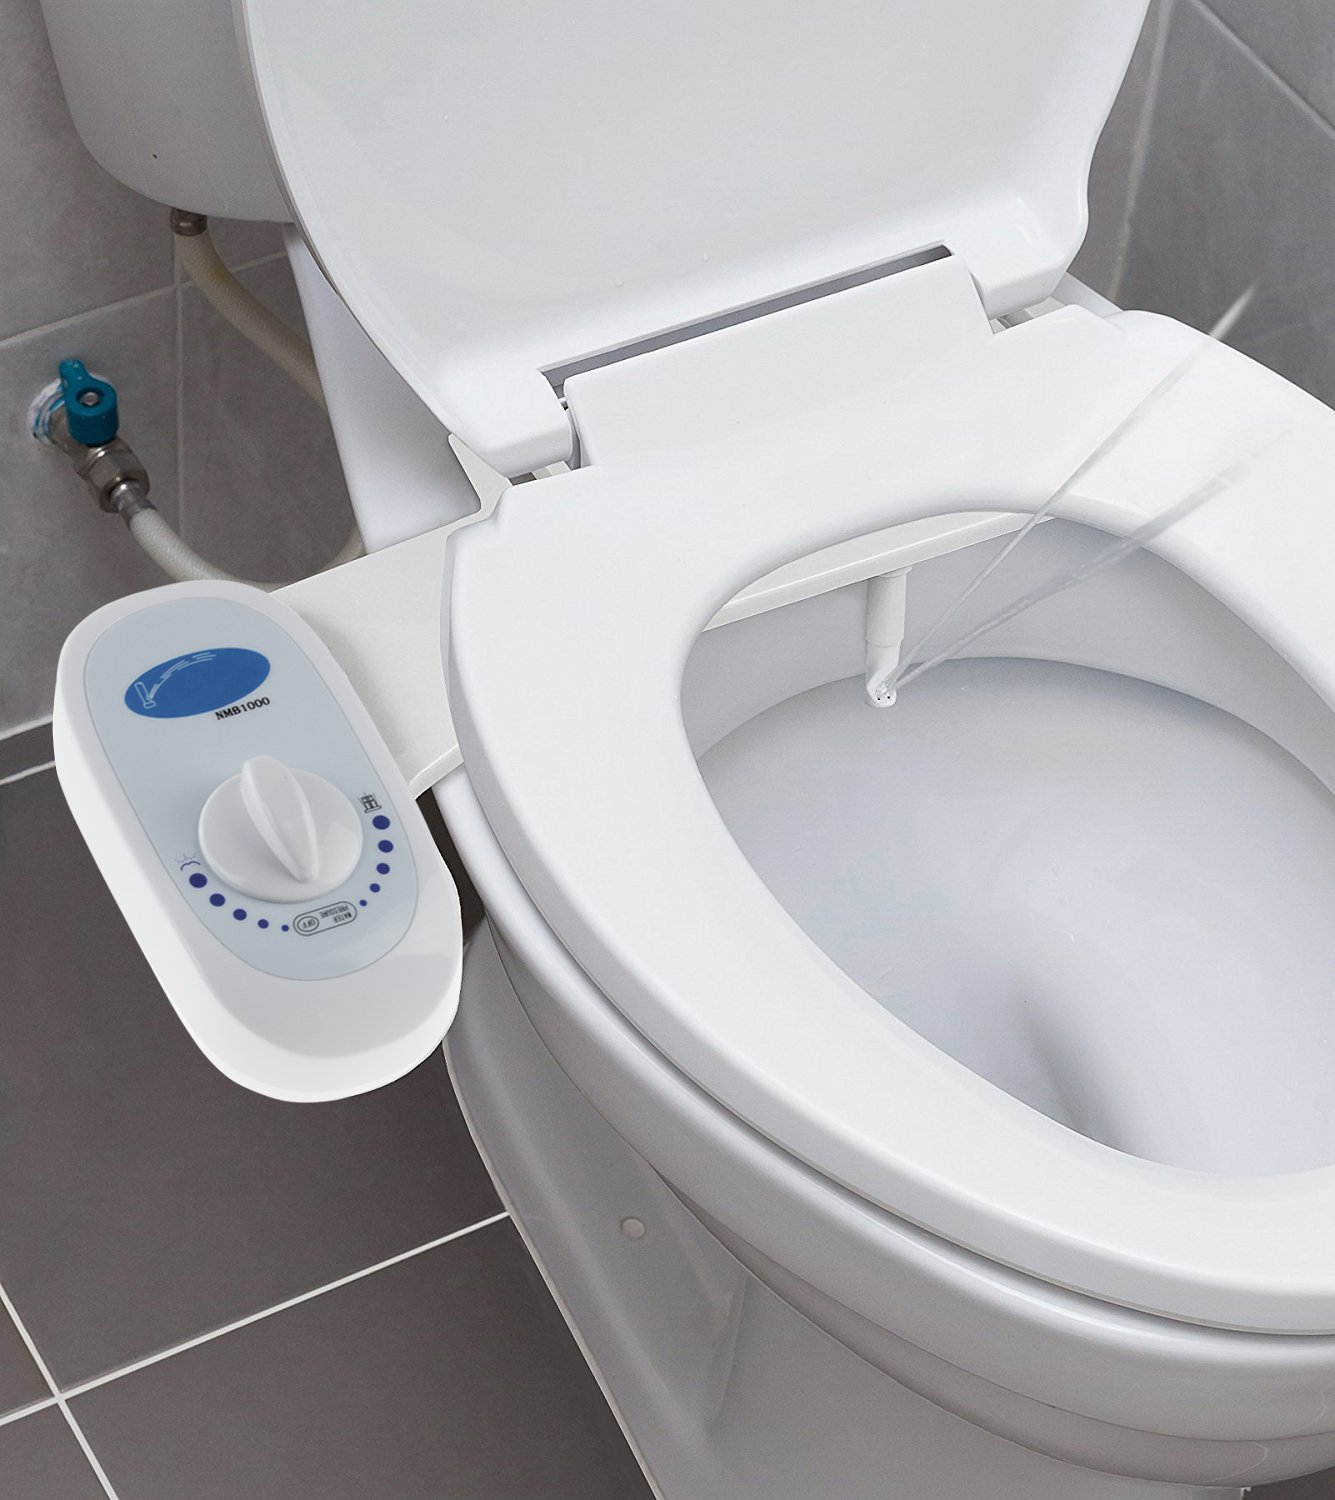 life the accessories bidet easier toilet in making disabled bathroom